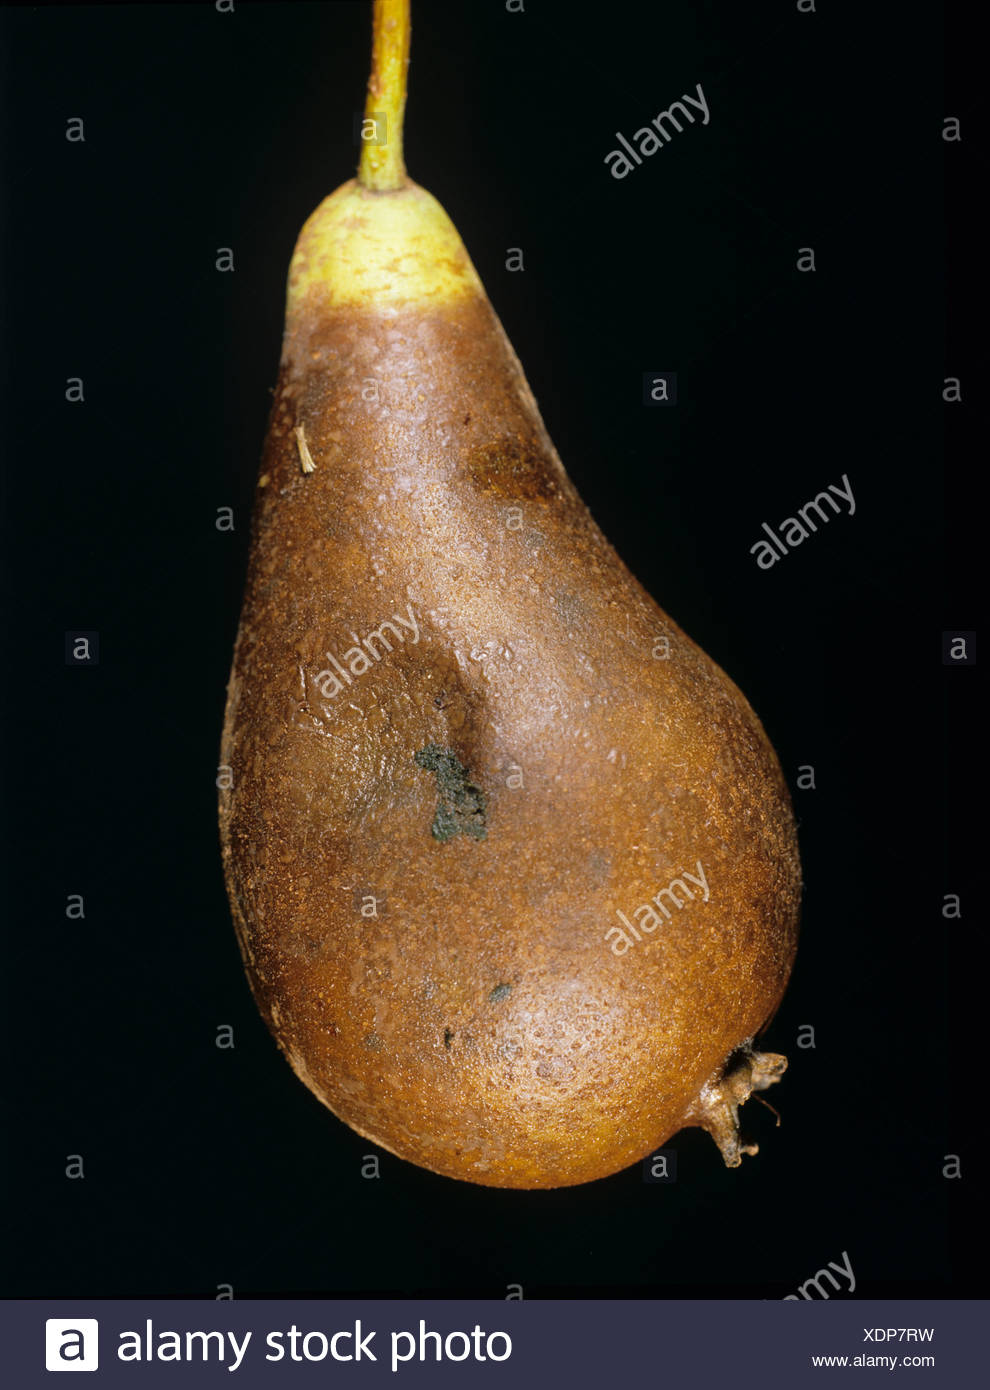 Pear fruit with fruit rot caused by Phytophthora syringae - Stock Image